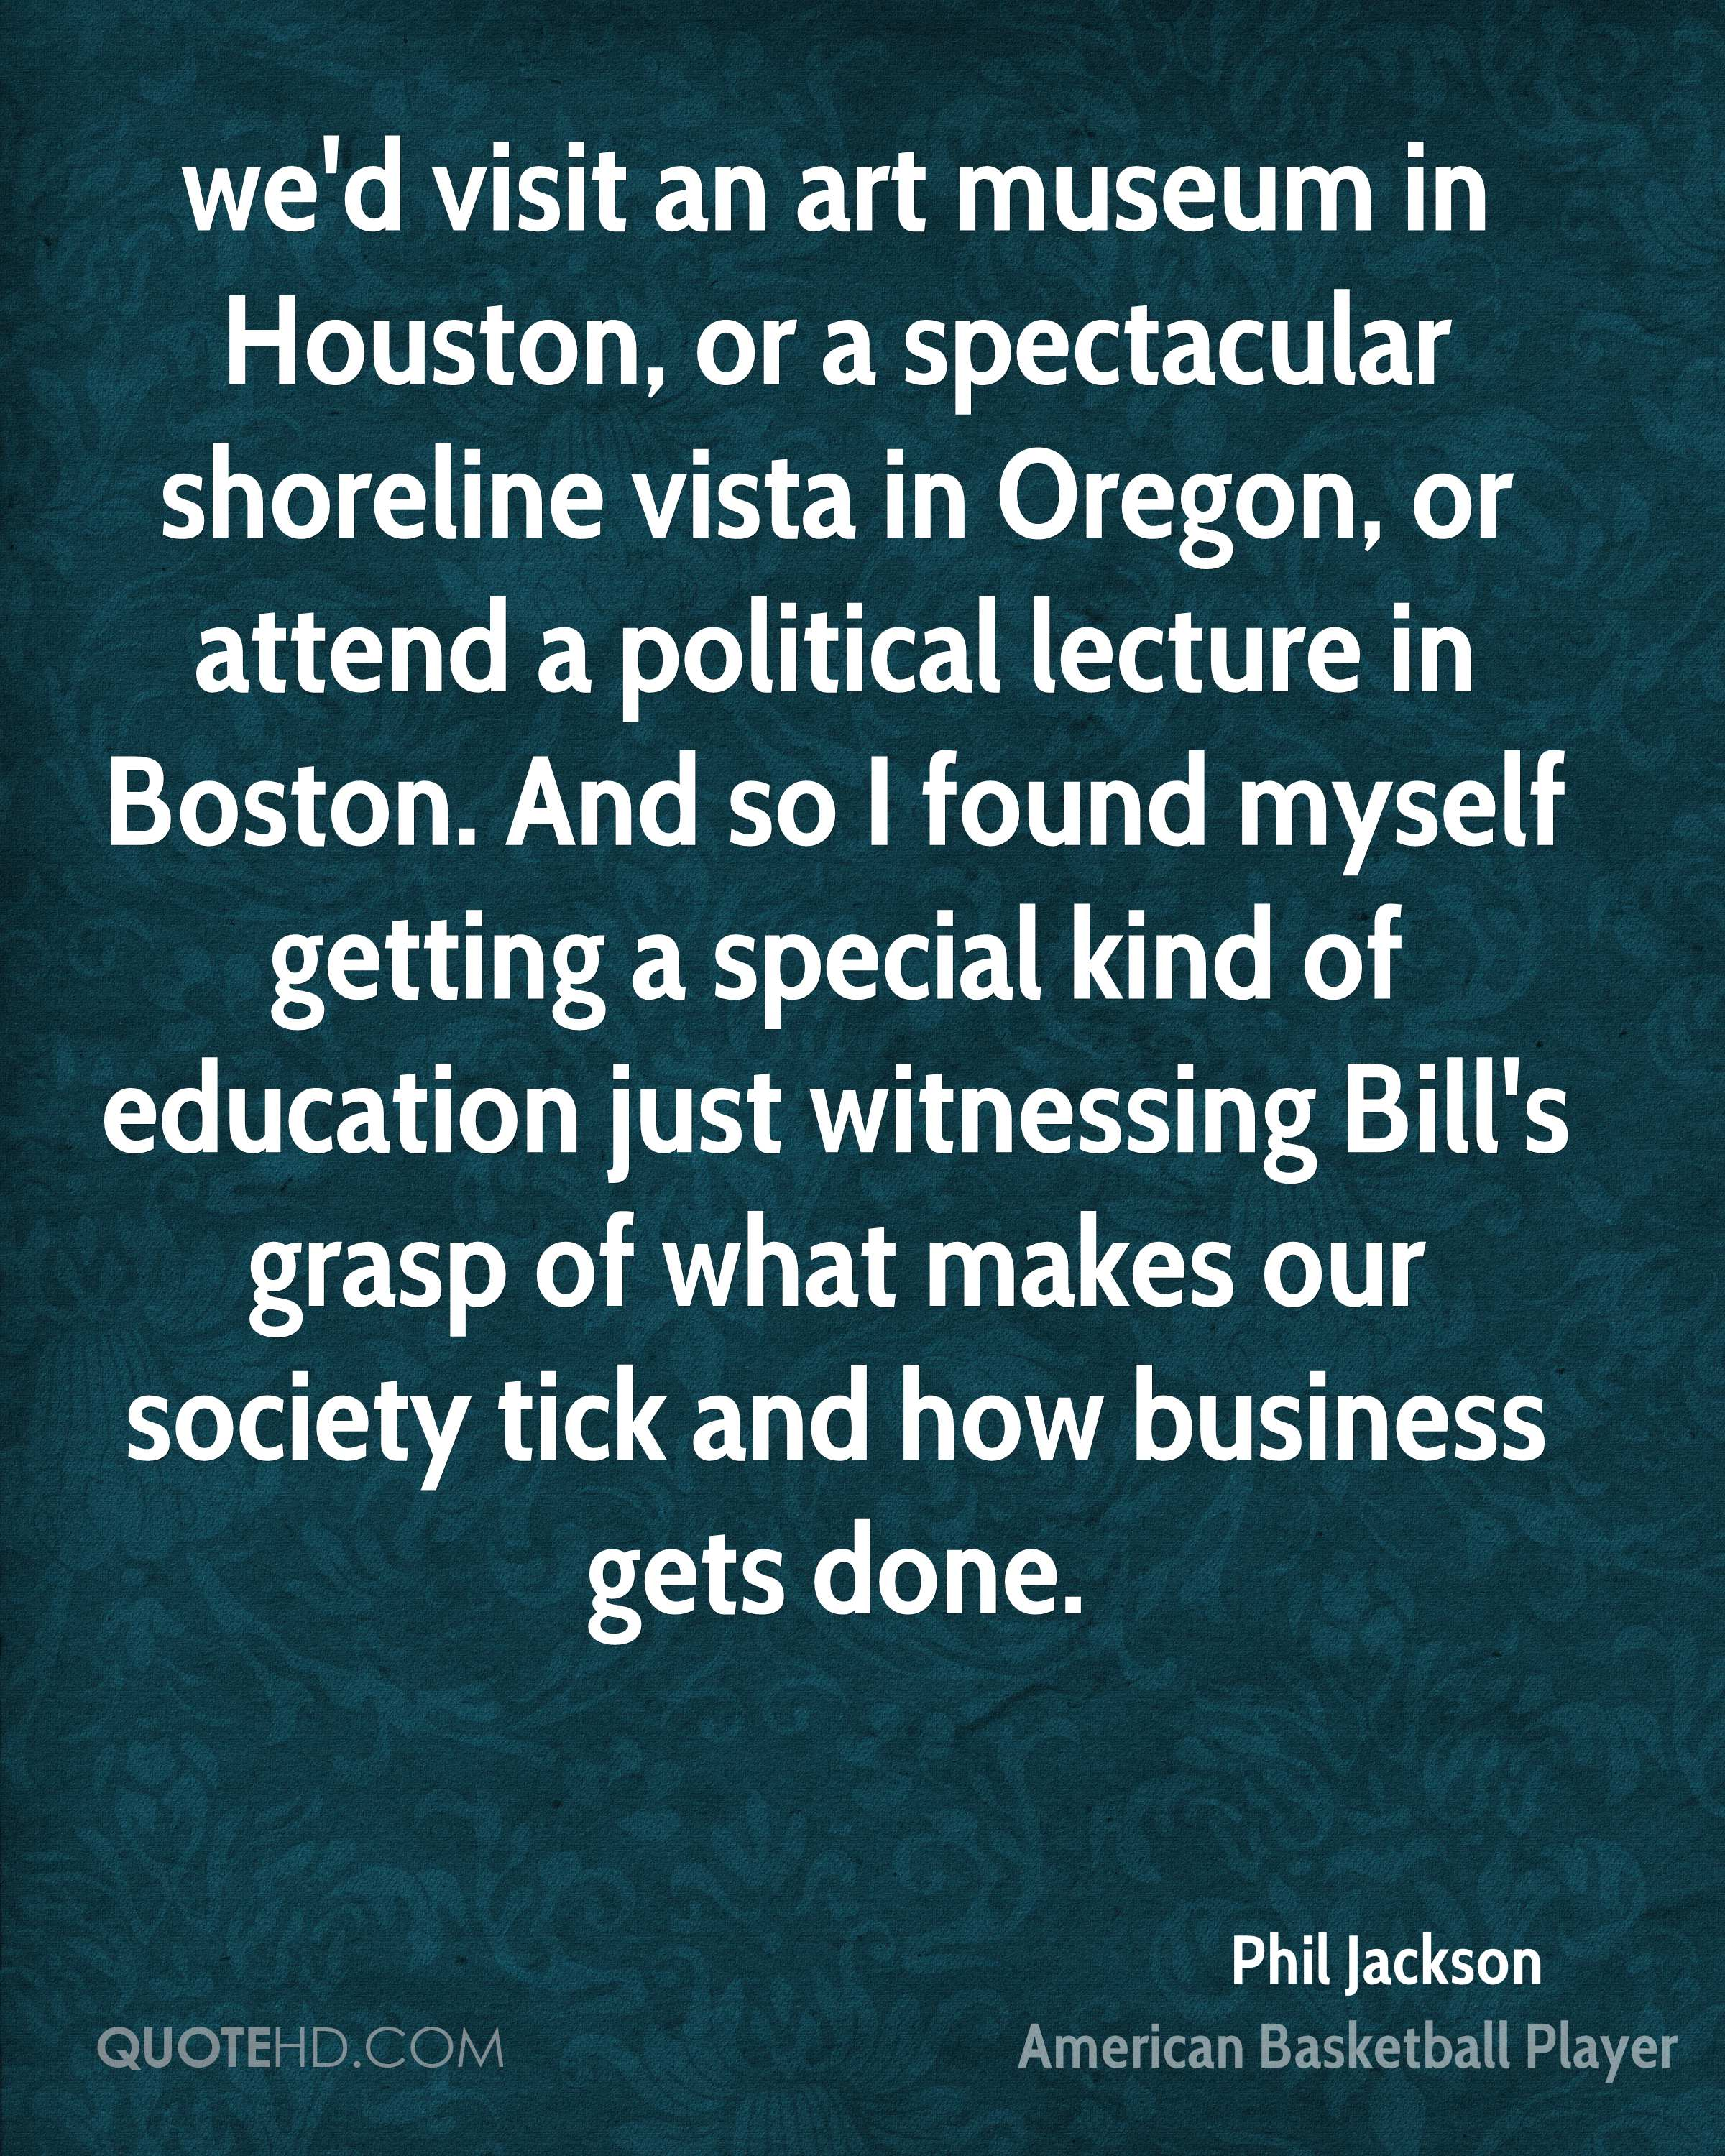 we'd visit an art museum in Houston, or a spectacular shoreline vista in Oregon, or attend a political lecture in Boston. And so I found myself getting a special kind of education just witnessing Bill's grasp of what makes our society tick and how business gets done.